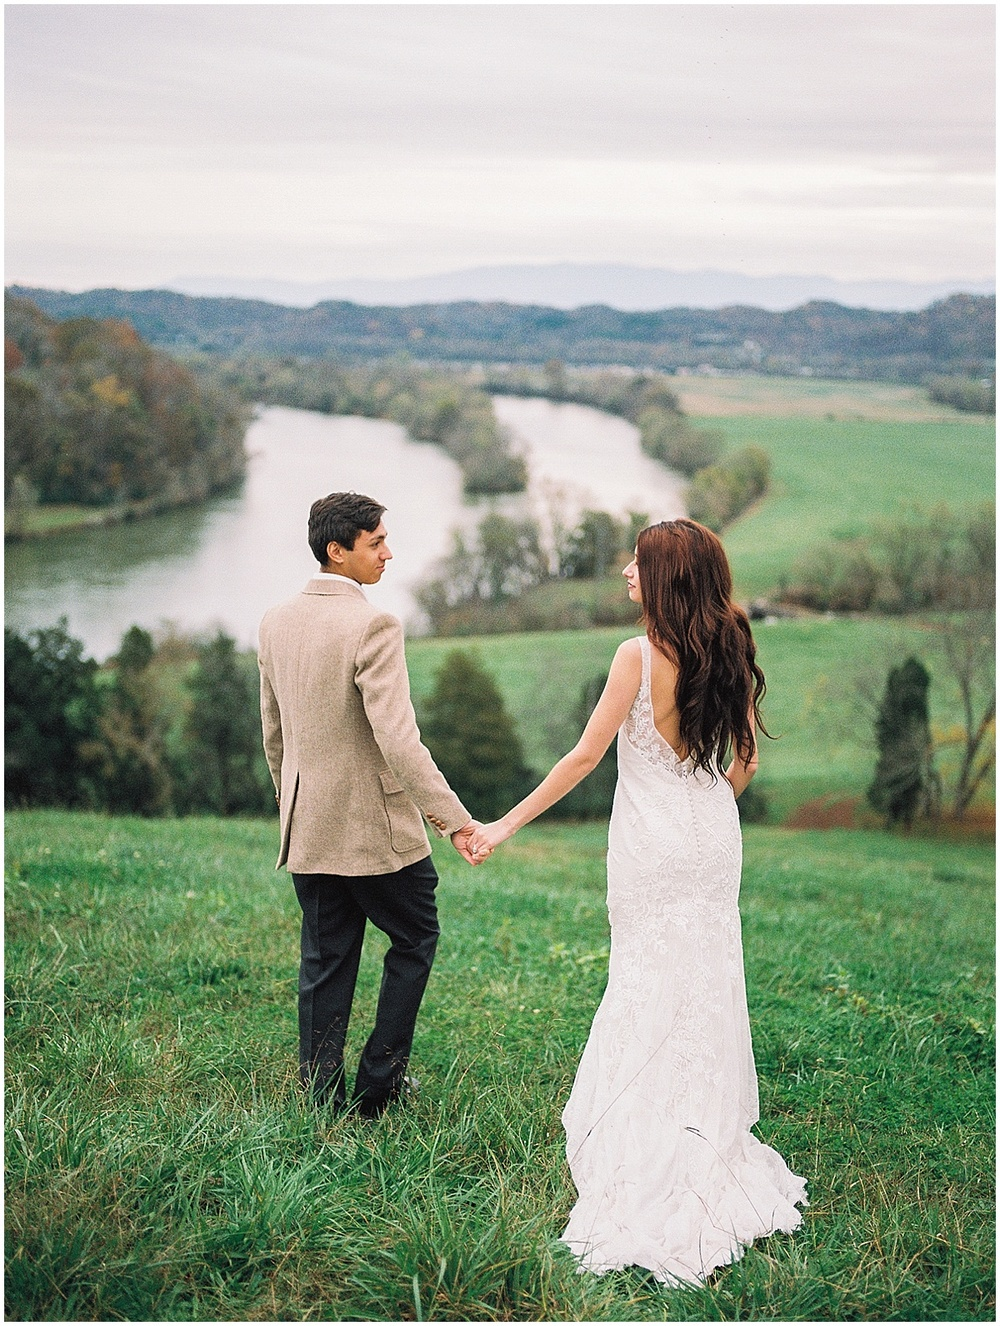 Abigail_Malone_Fall_Wedding_Knoxville_Film_Portra_400_Kodak_Mountain_Views_Abby_Elizabeth-7.jpg